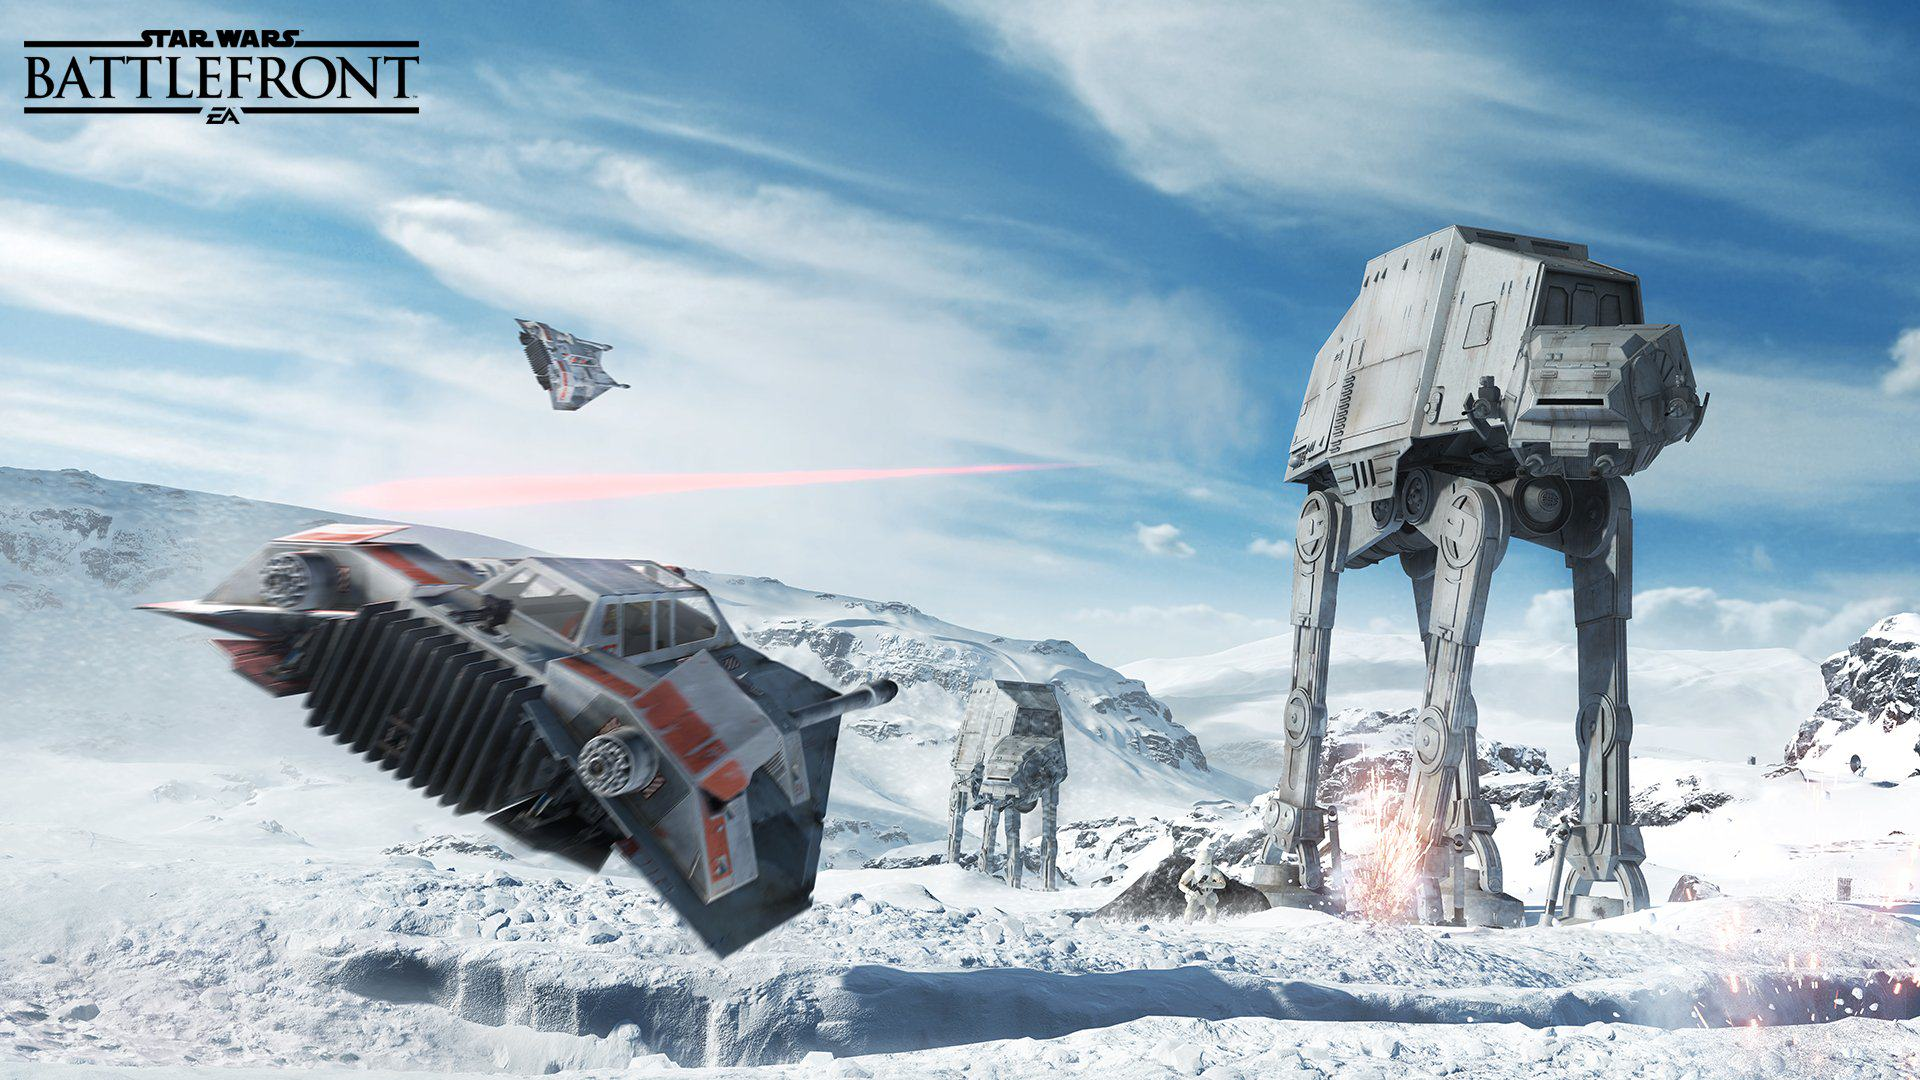 hoth2 Star Wars Battlefront Announcement Teased With Picture Of Hoth